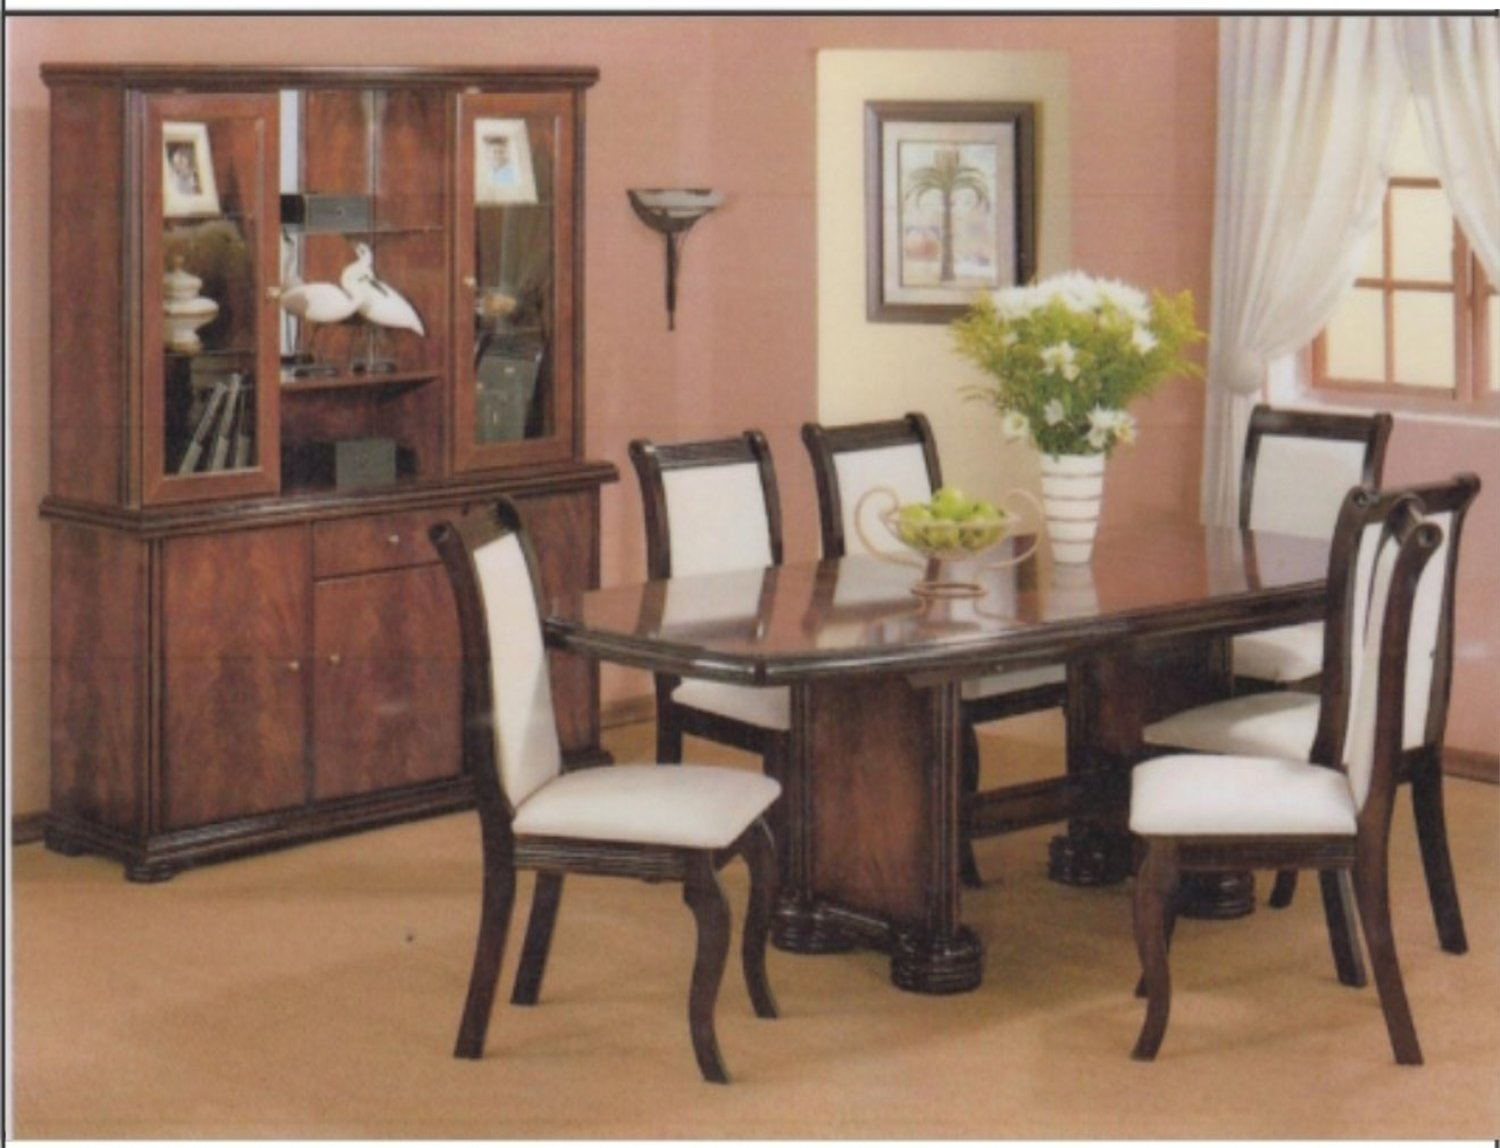 10 Piece Borocca Dining Room Suite